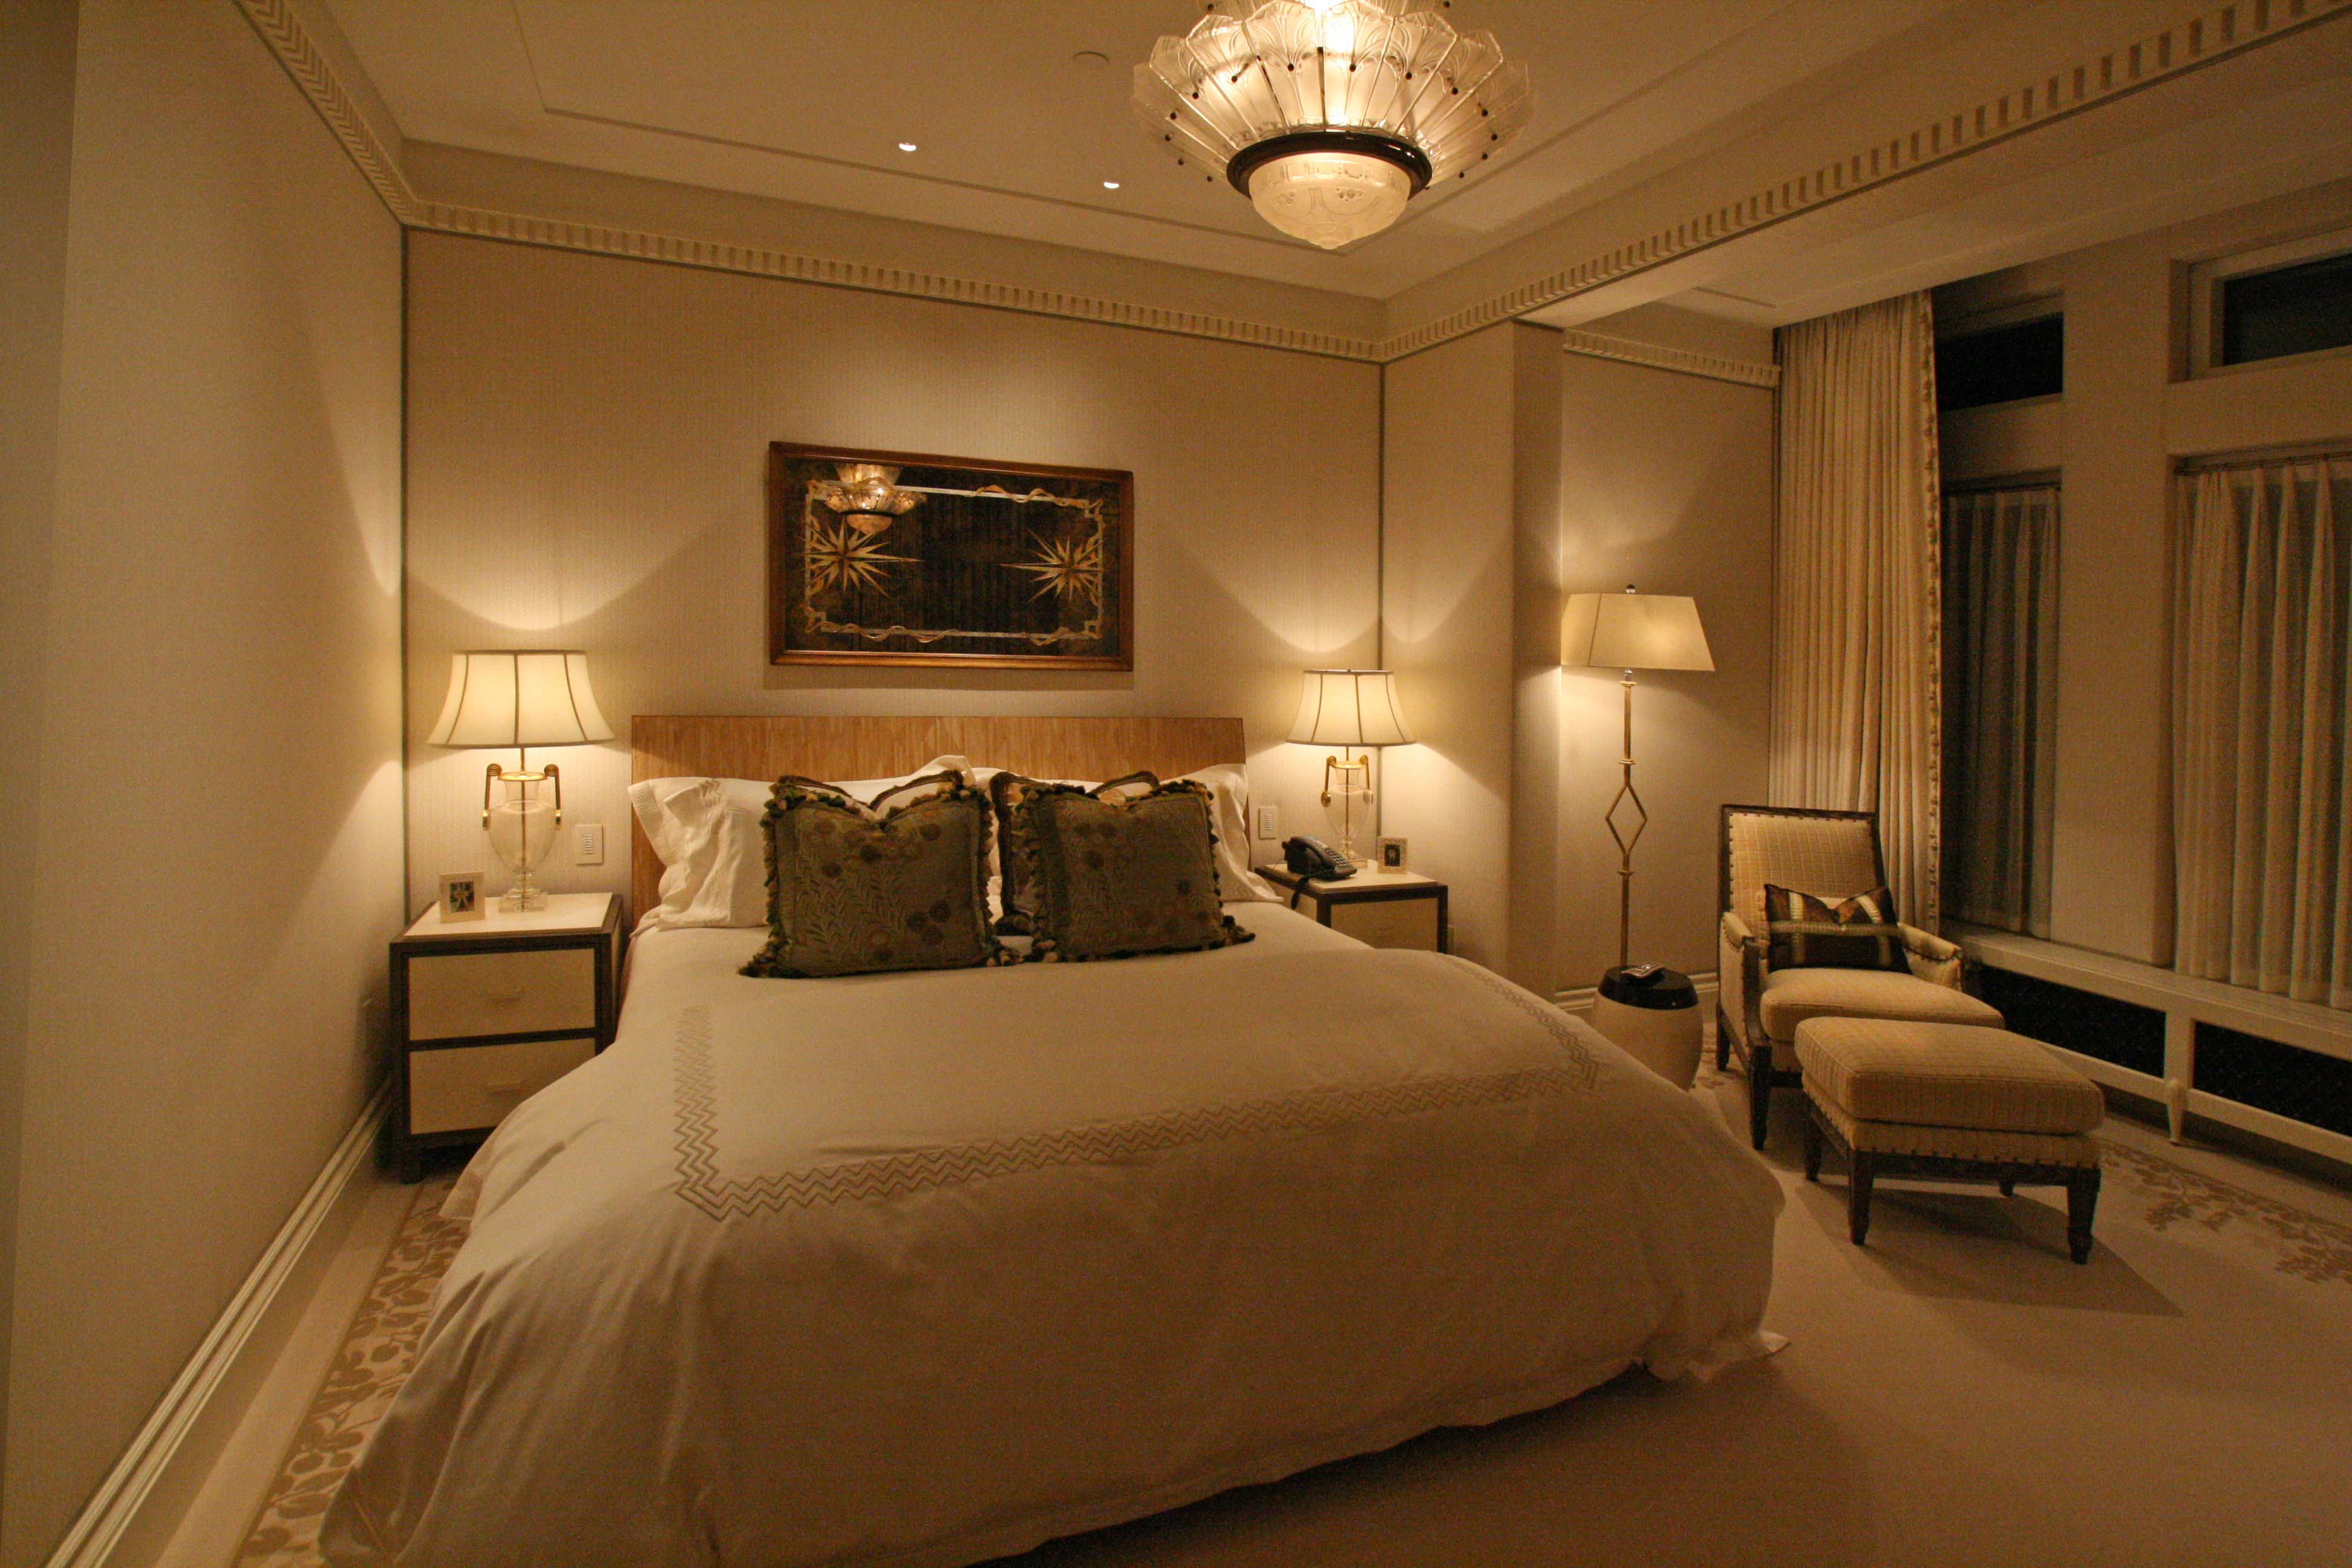 Q. What considerations should be taken into account when lighting a bedroom?